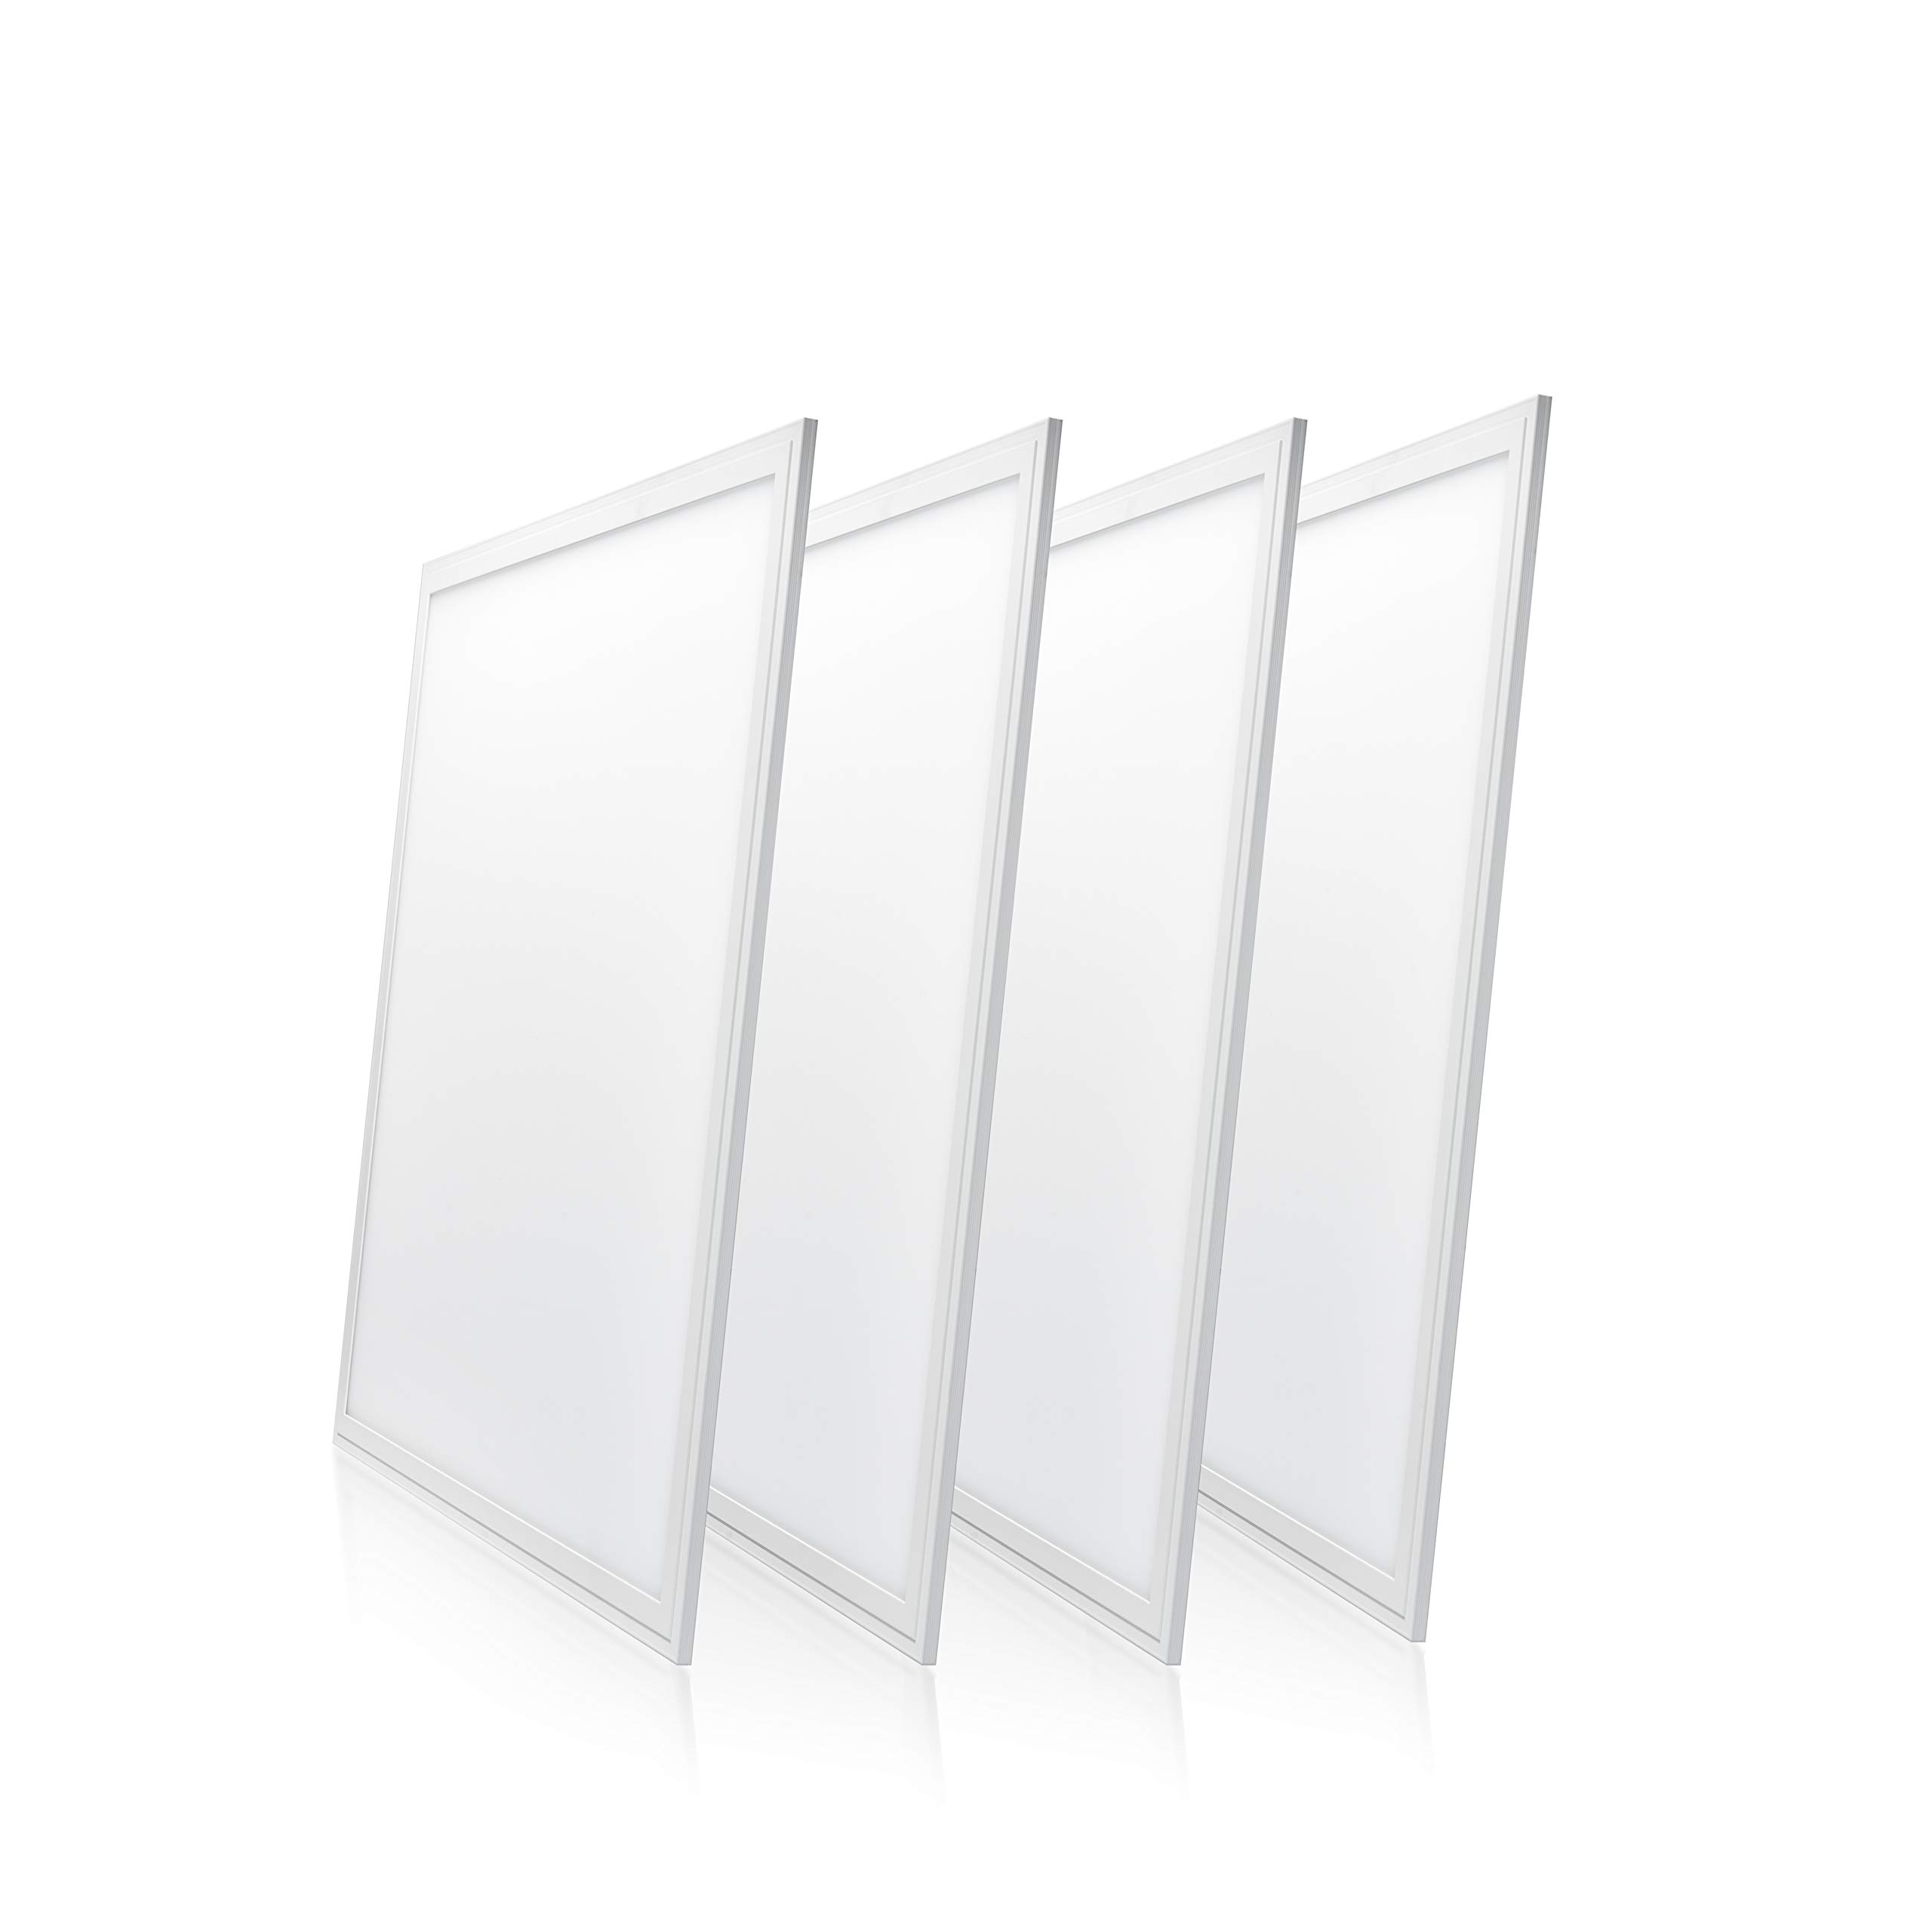 Parmida (4-Pack) LED Panel Light, 2x2, 40W (80W Replacement), 4400lm, 4000K (Cool White), Dimmable, Ultra Thin Edge-lit Flat Panel, UL & DLC Certified